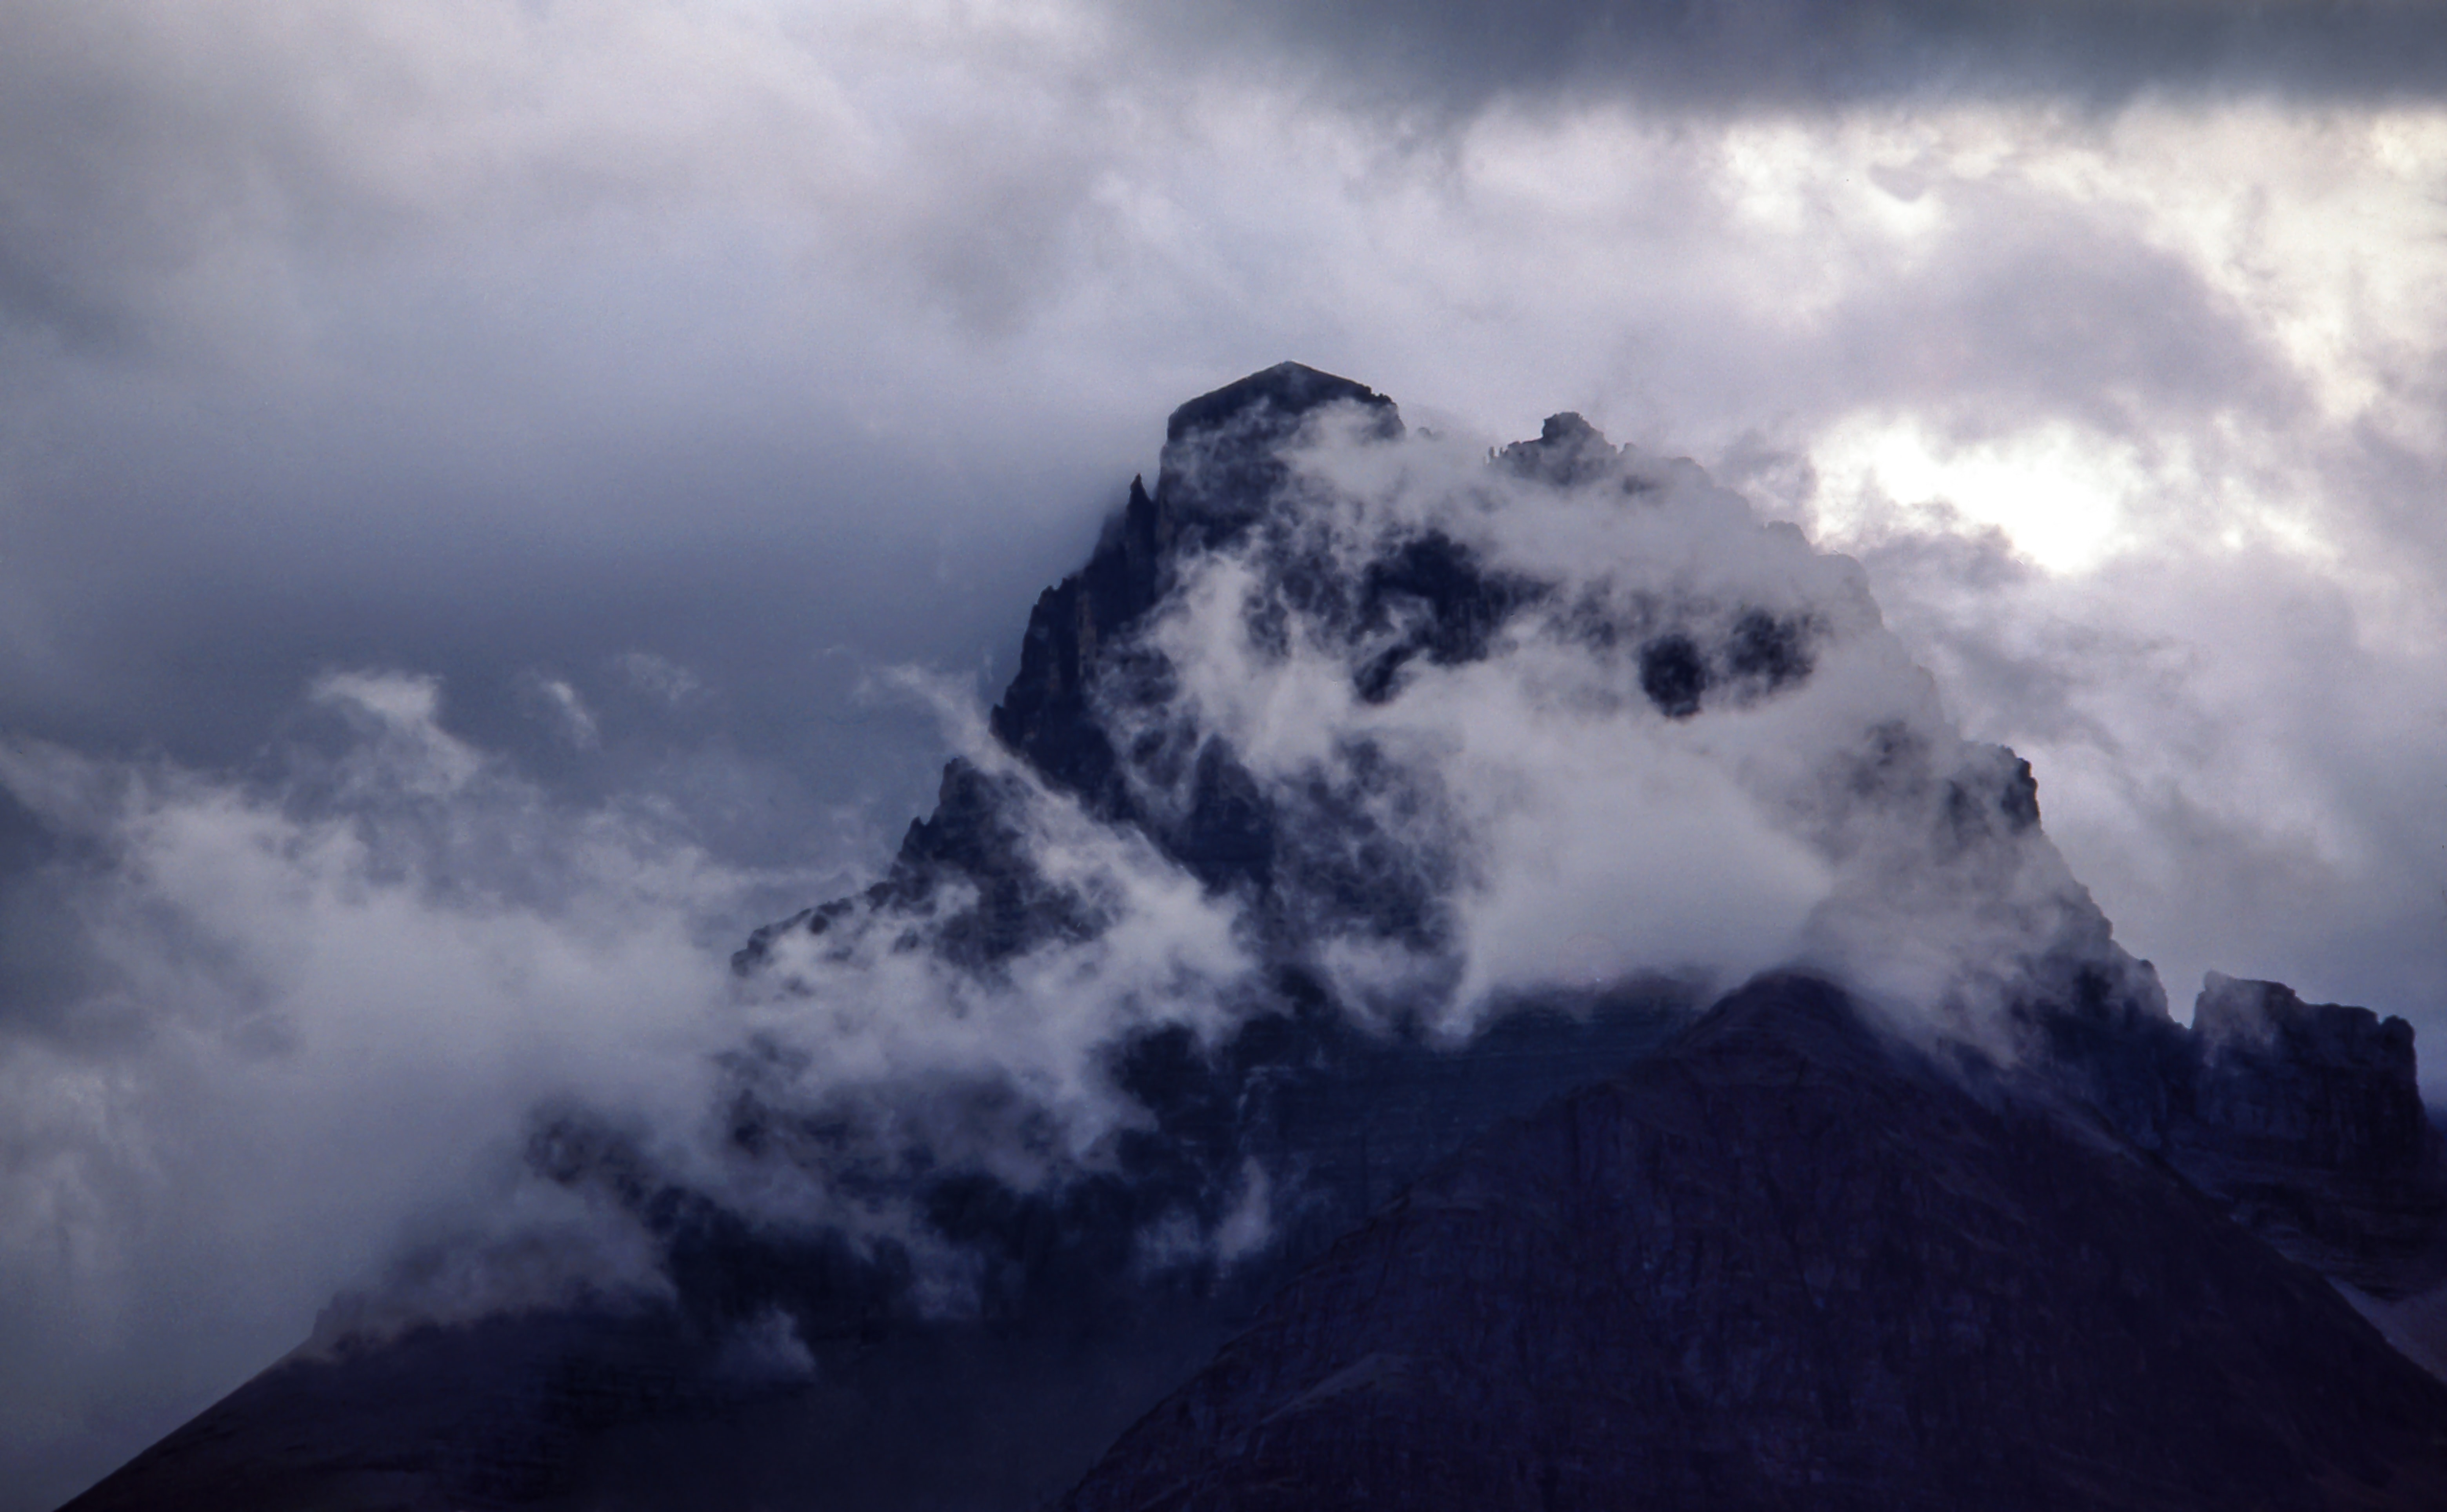 mountain cliff with clouds